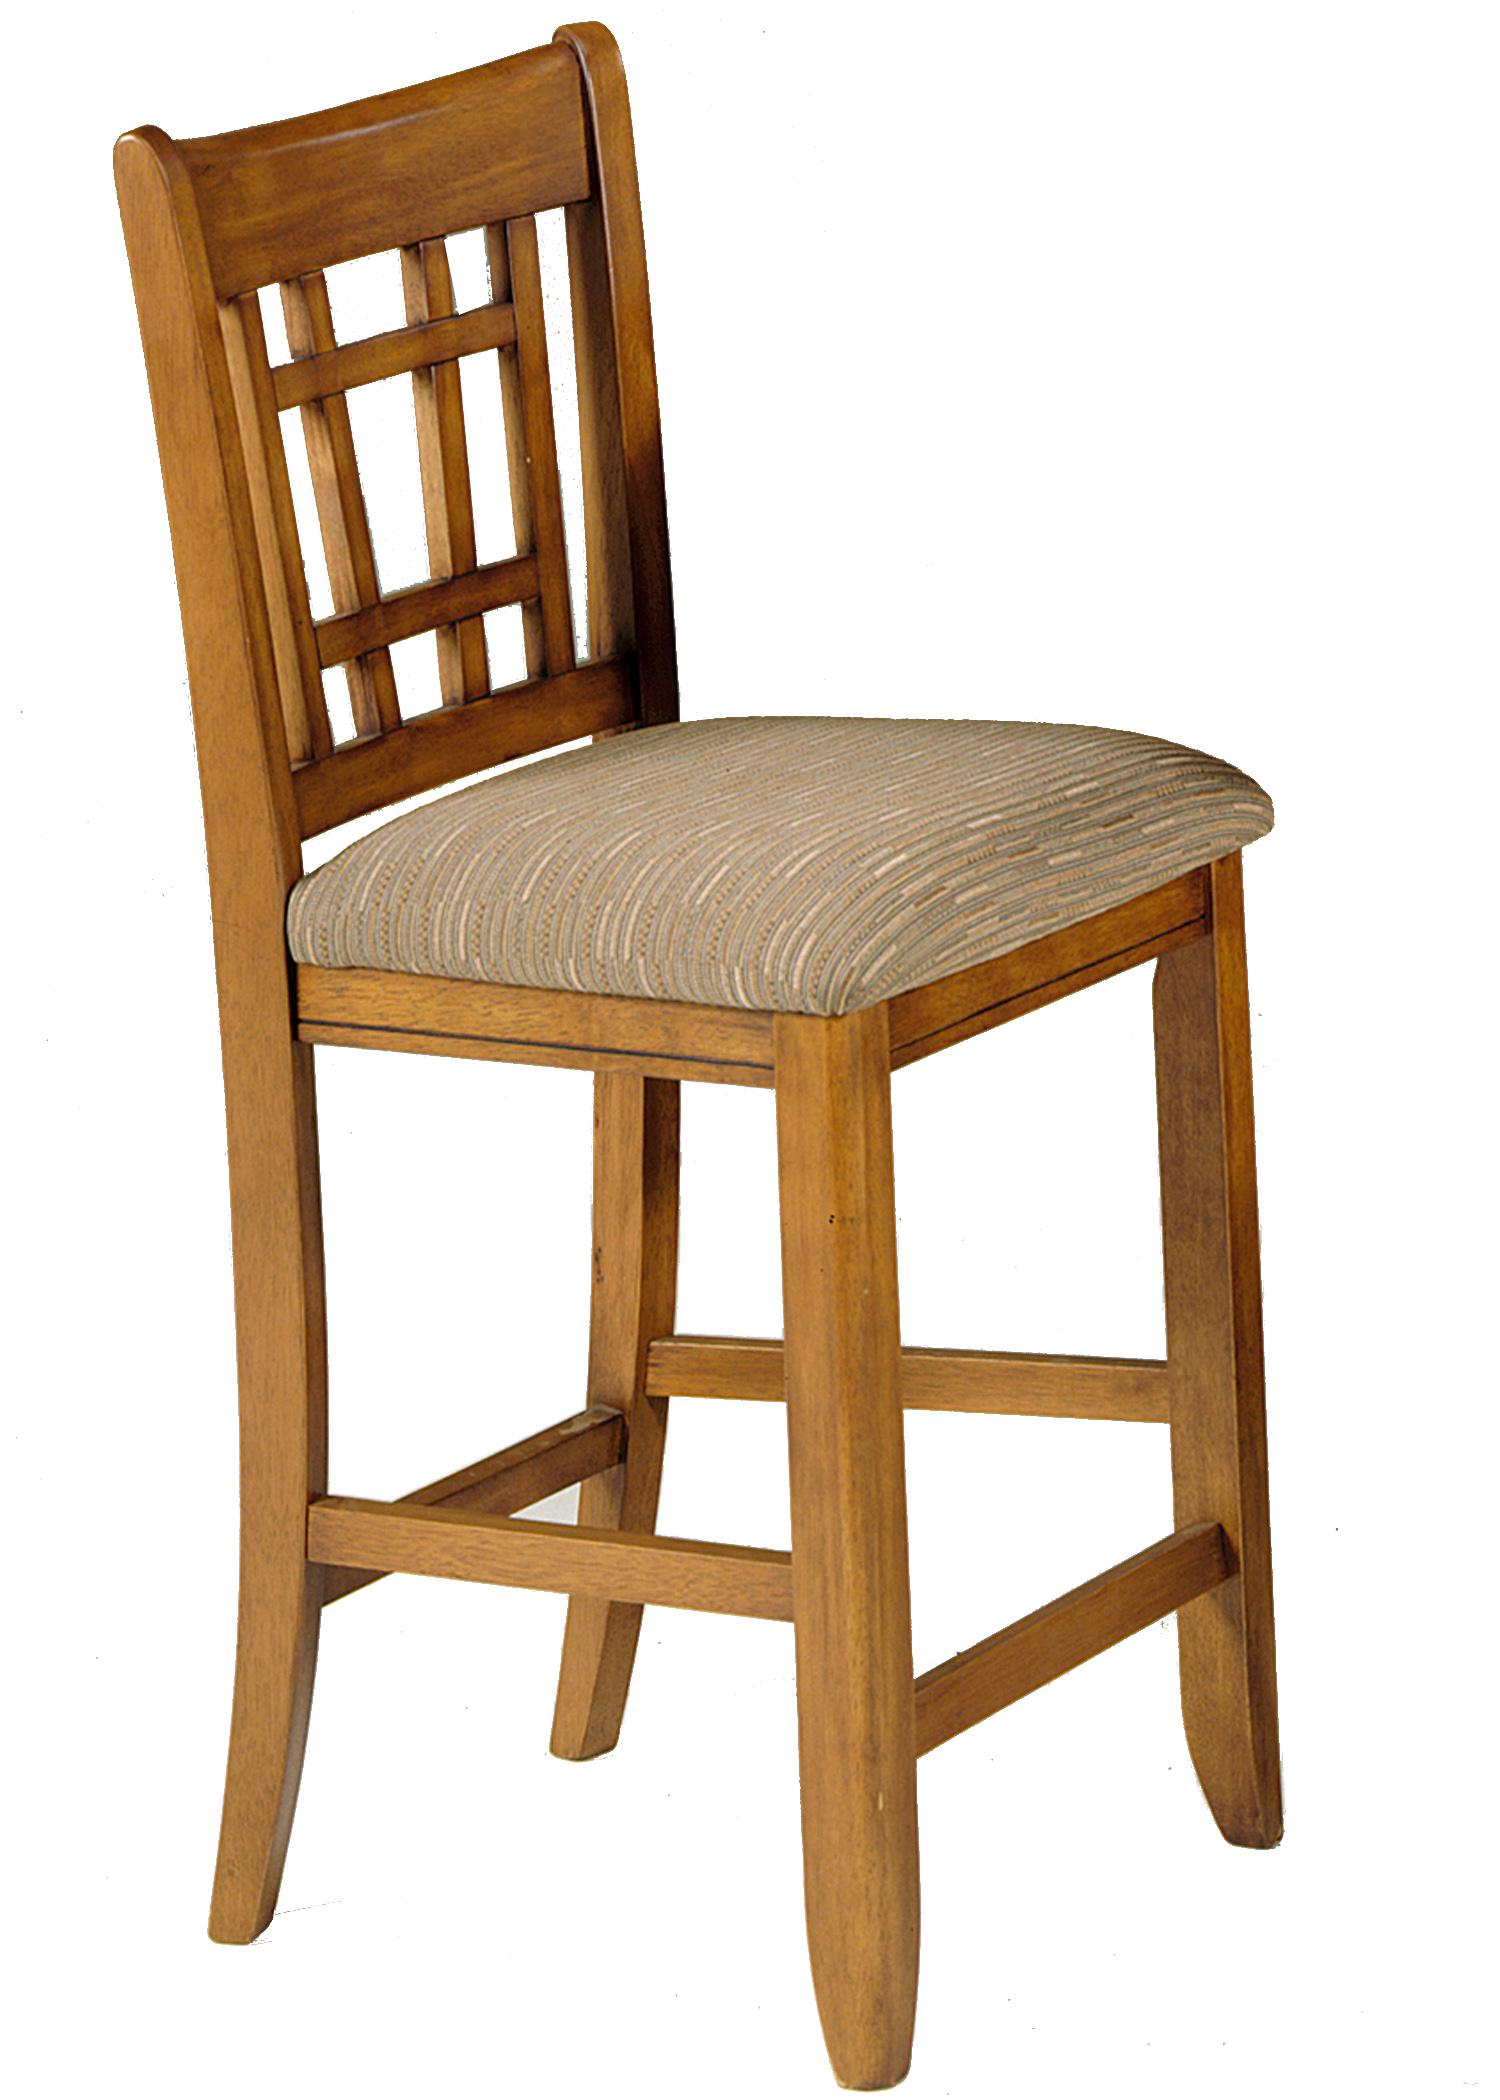 30 Inch Mission Bar Stool By Liberty Furniture Wolf And Gardiner Wolf Furniture